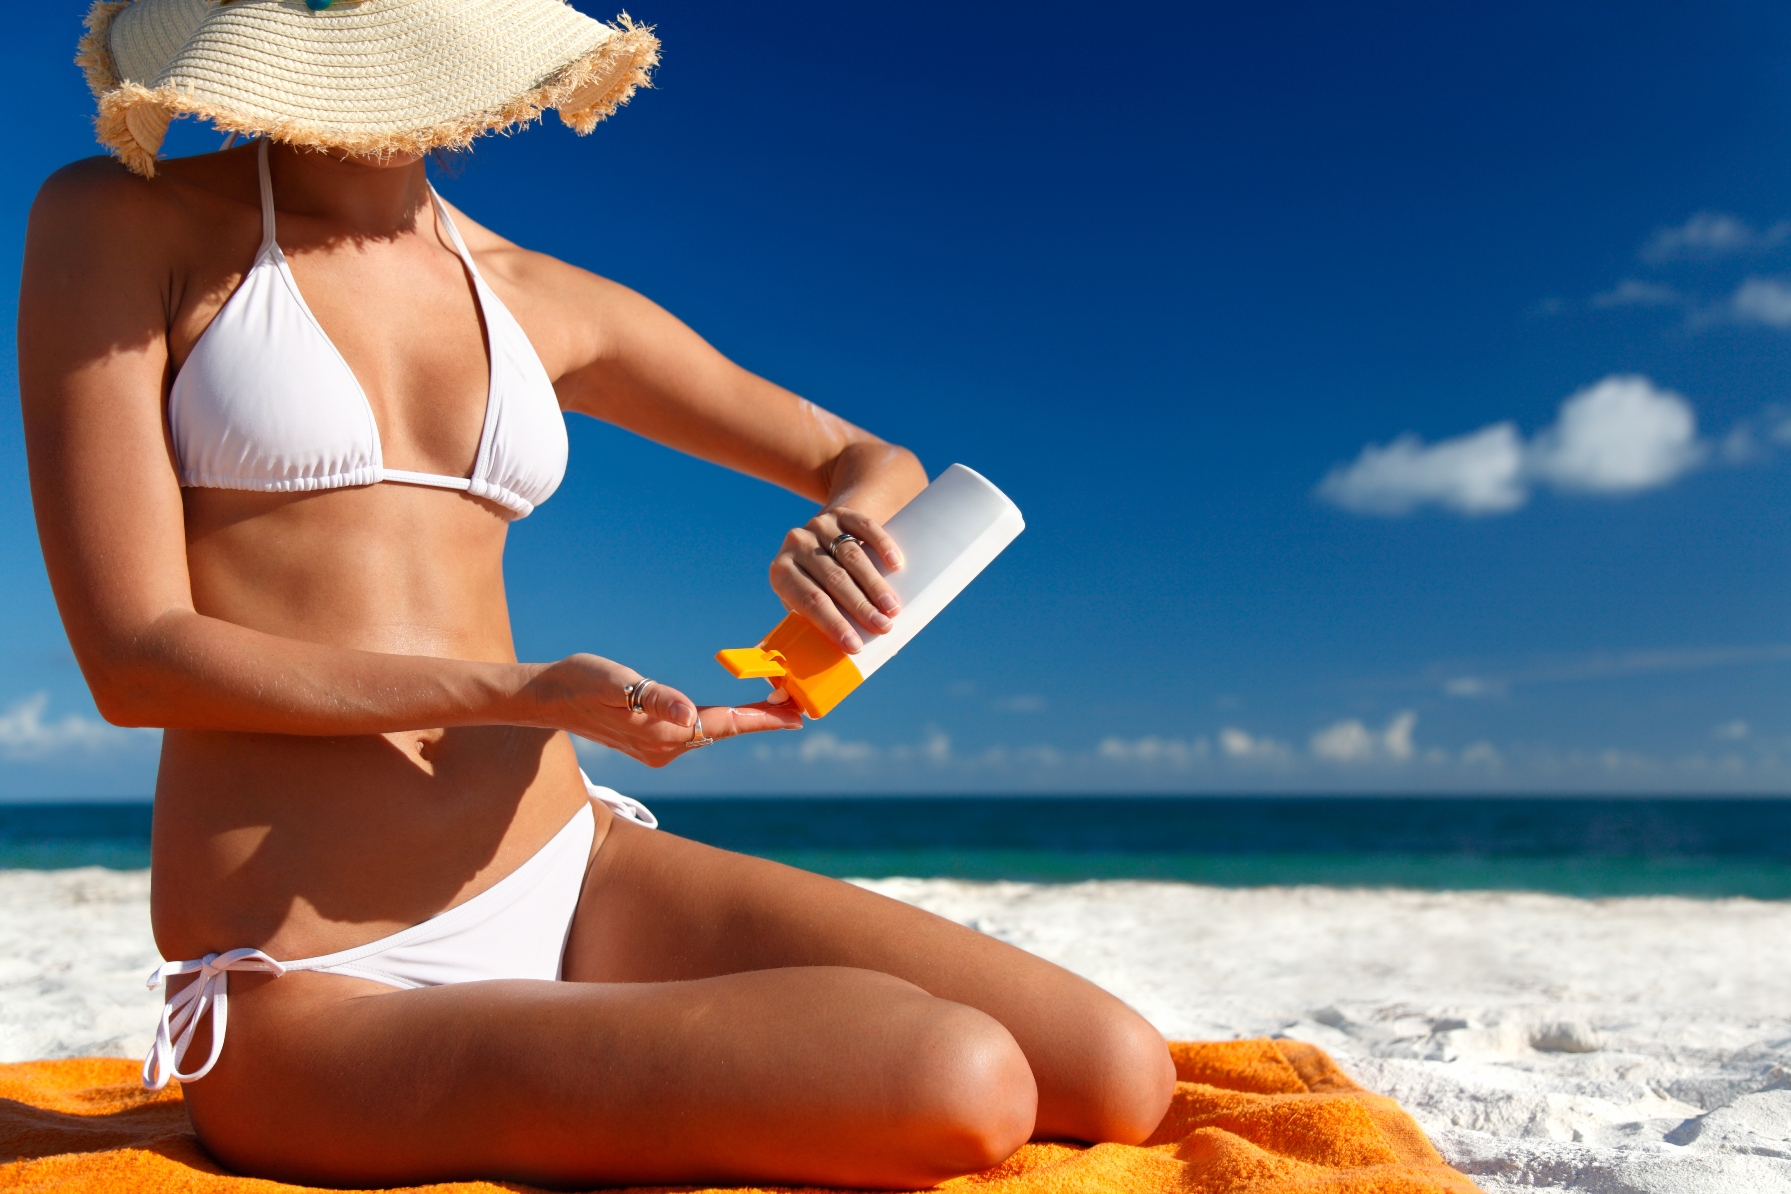 Sunscreen Boca Raton, Skincare Boca Raton, Skin Cancer Prevention, South Florida Skin Care